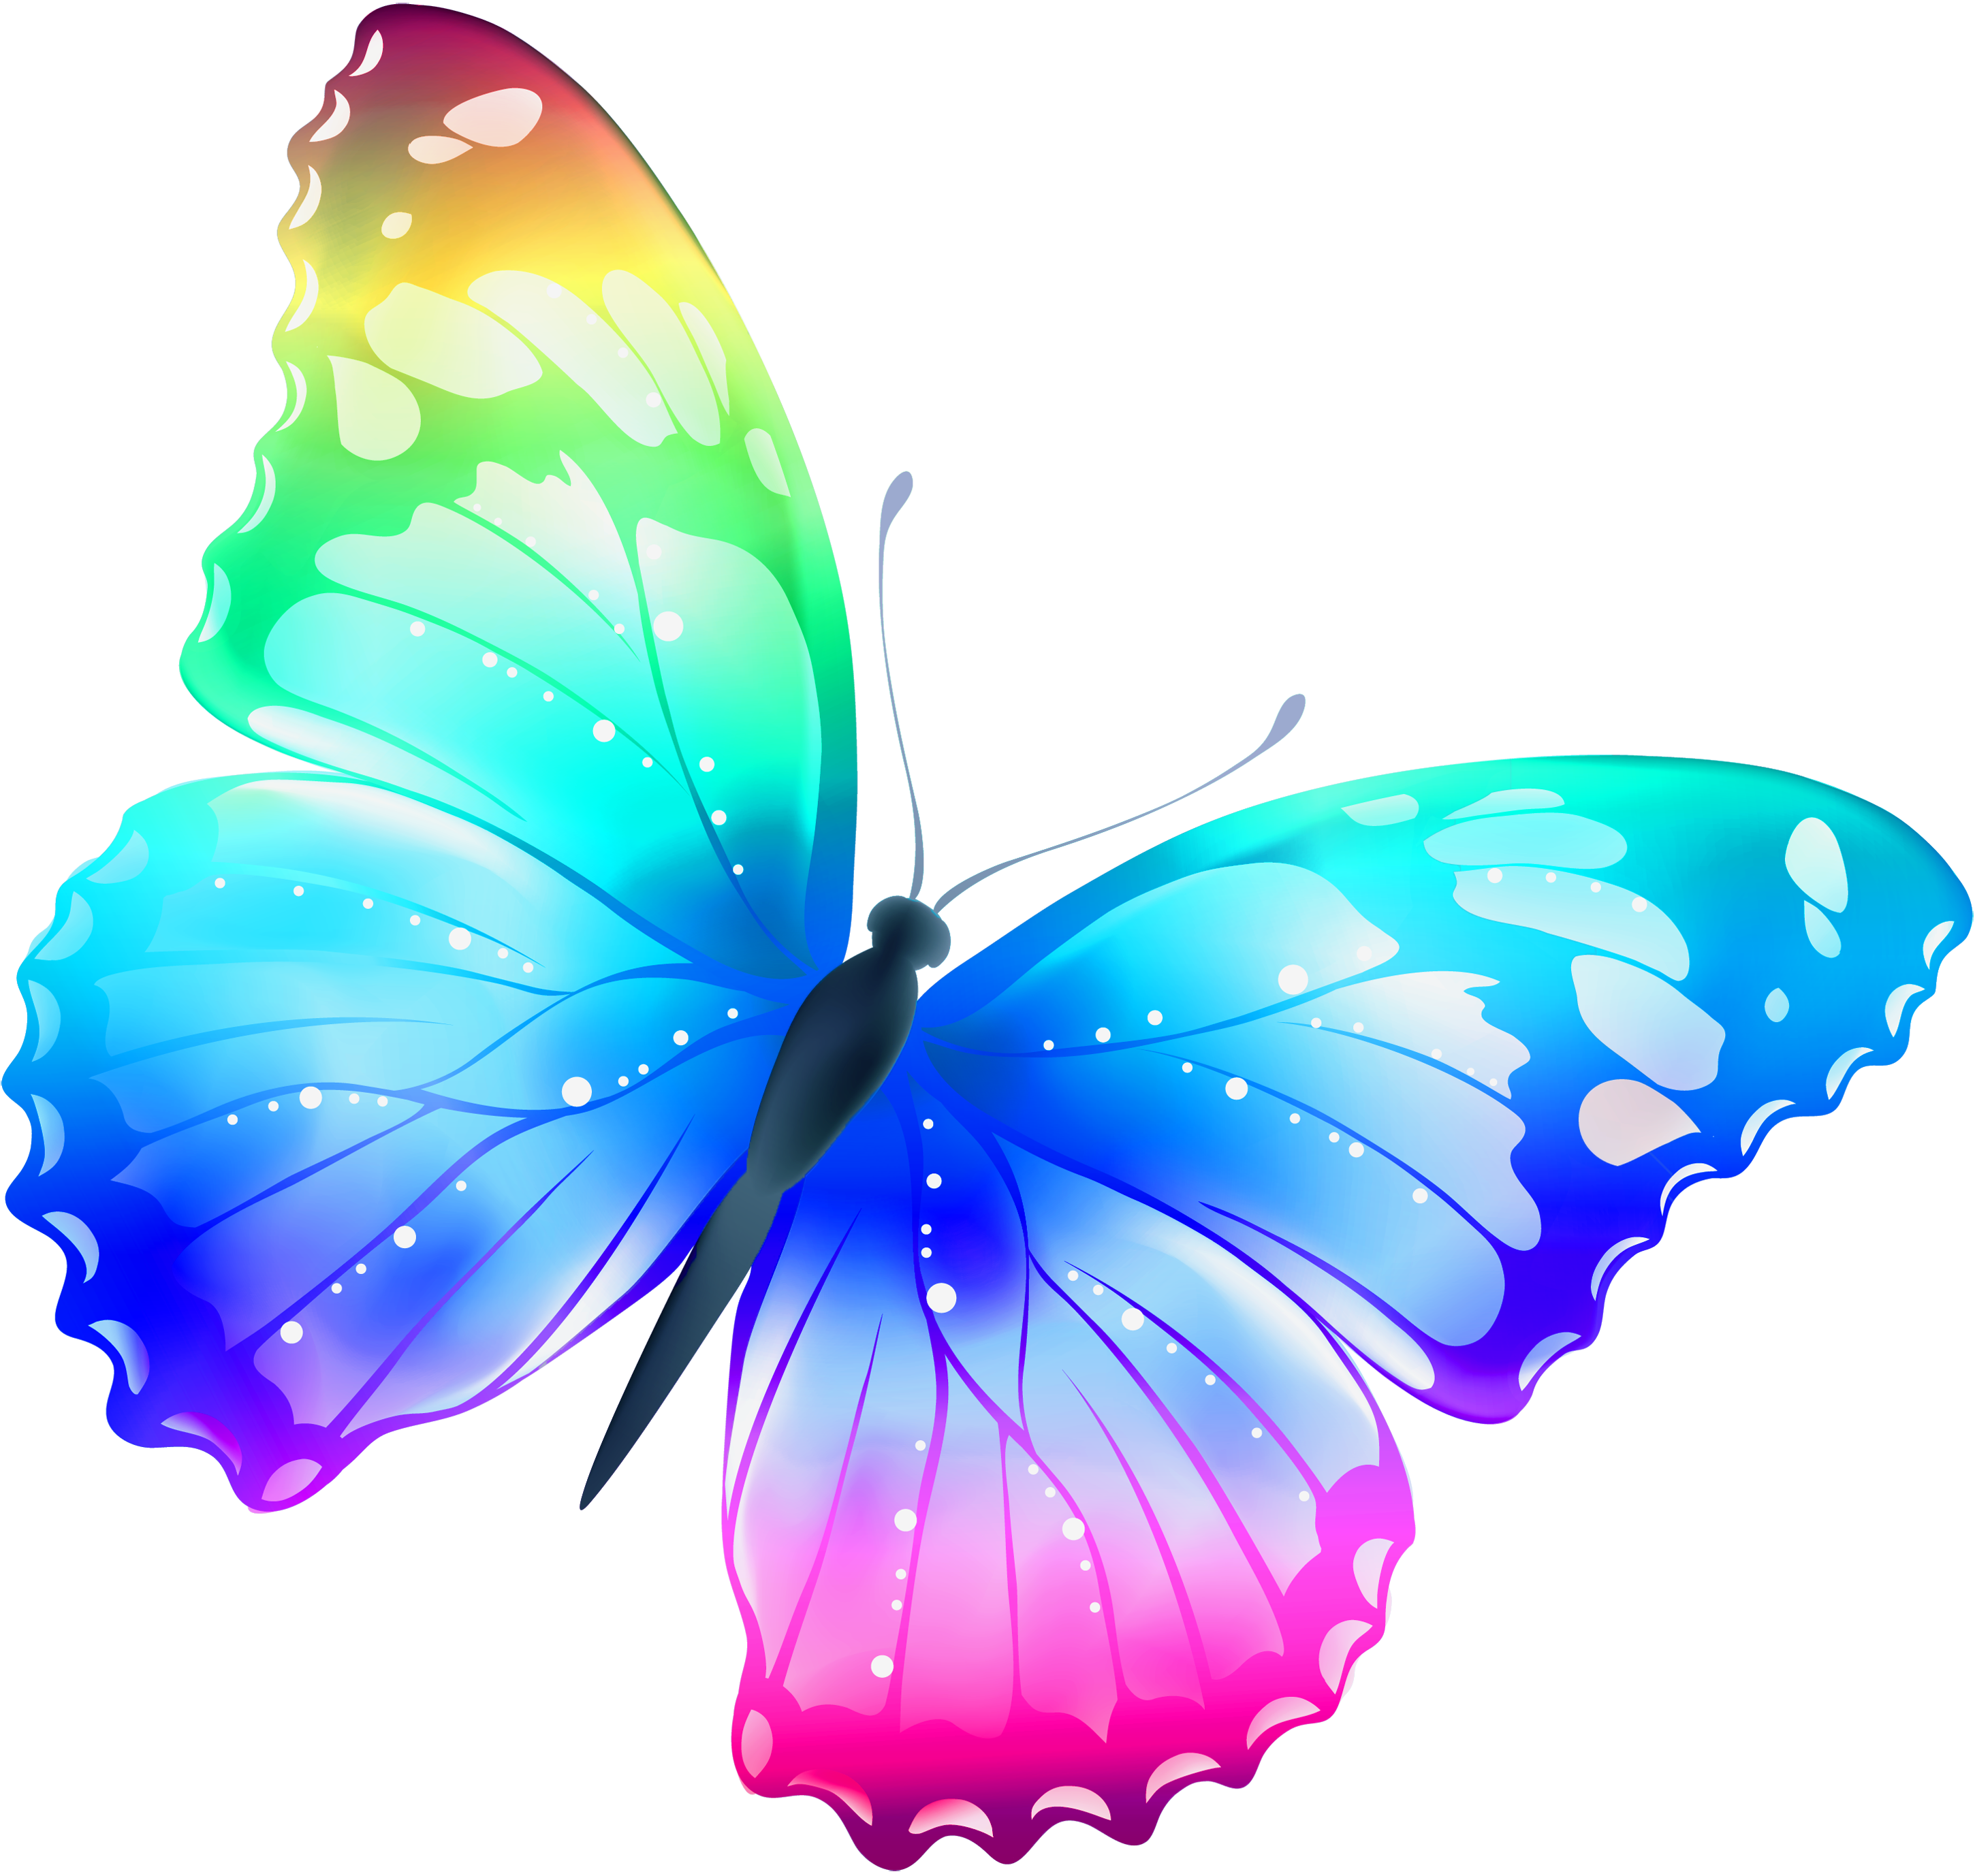 Fight clipart physical contact. Free pictures of butterflies